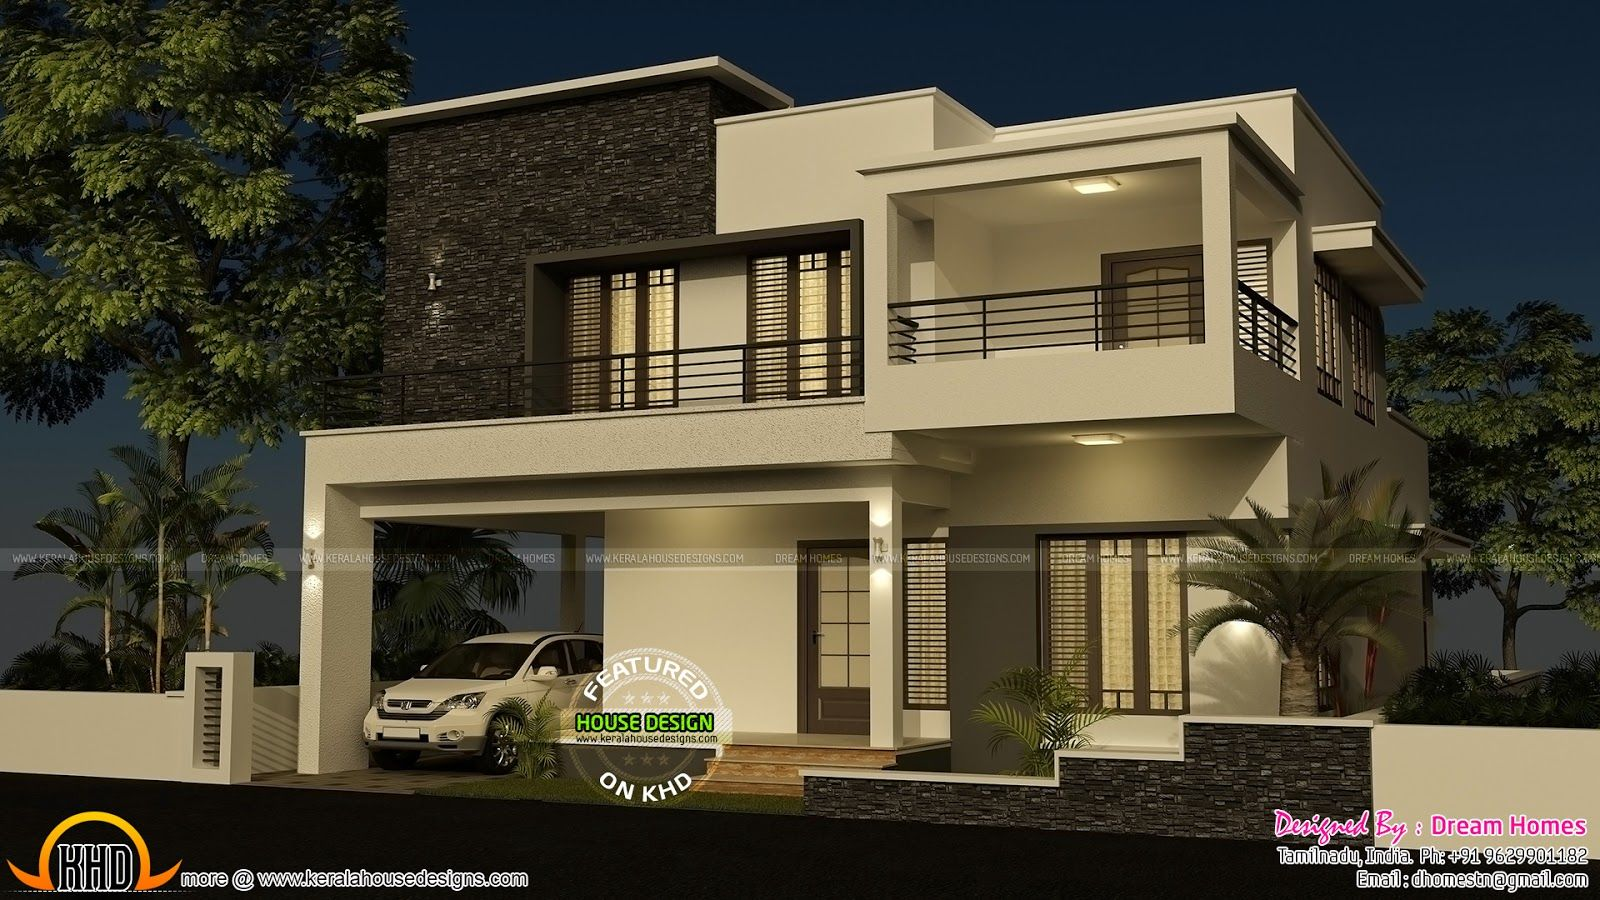 House elevation flat roof house elevation flat roof kerala house design modern